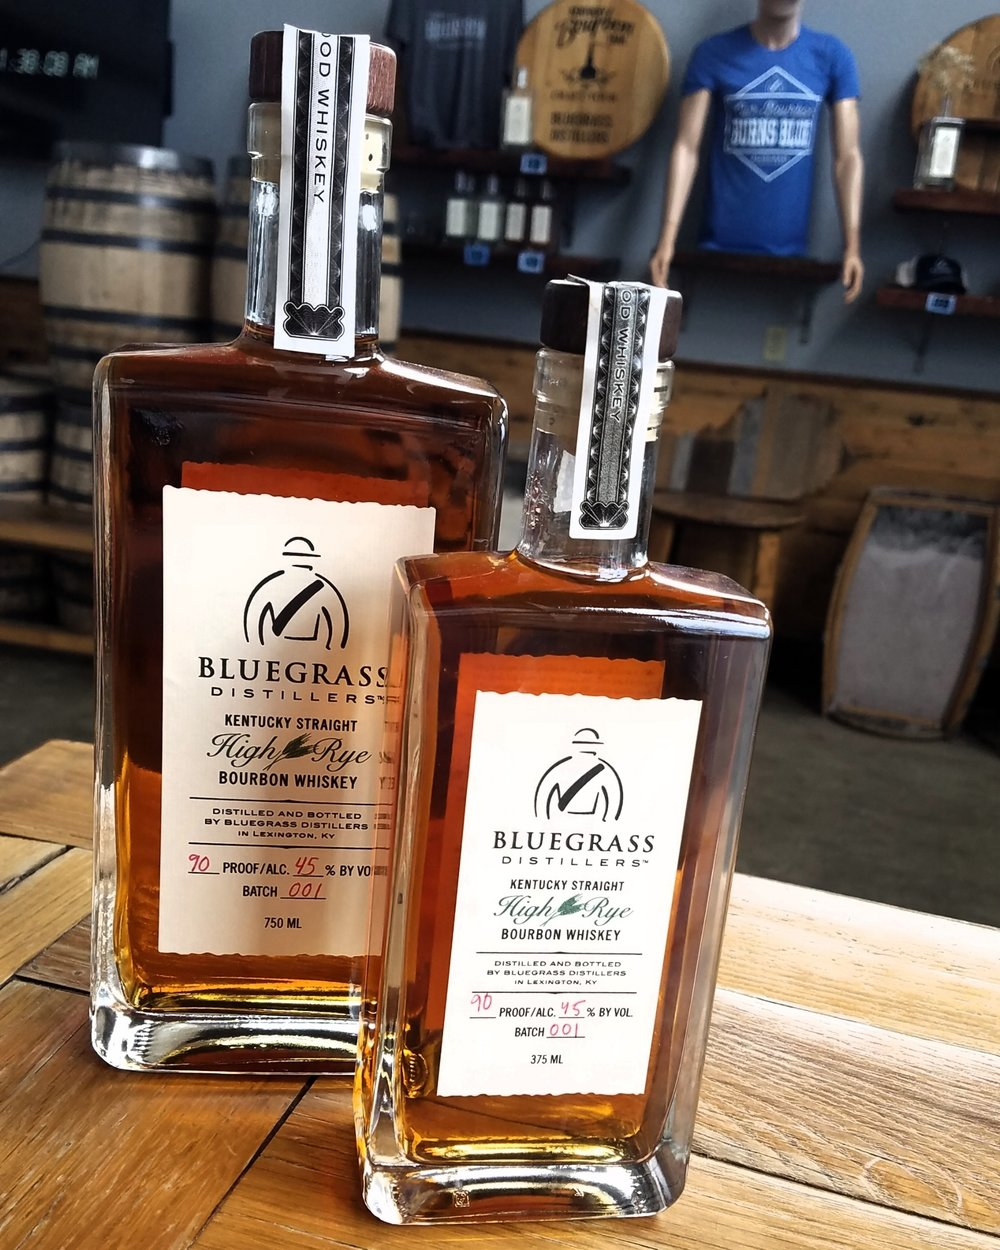 Kentucky StraightHigh rye bourbon - Our flagship bourbon is bottled at 90 Proof and made with 75% yellow corn, 15% rye, and 10% malted barley. It has aromatic notes of butterscotch and spices with a peppery, spiced flavor. Barrel-aged for at least 2 years.